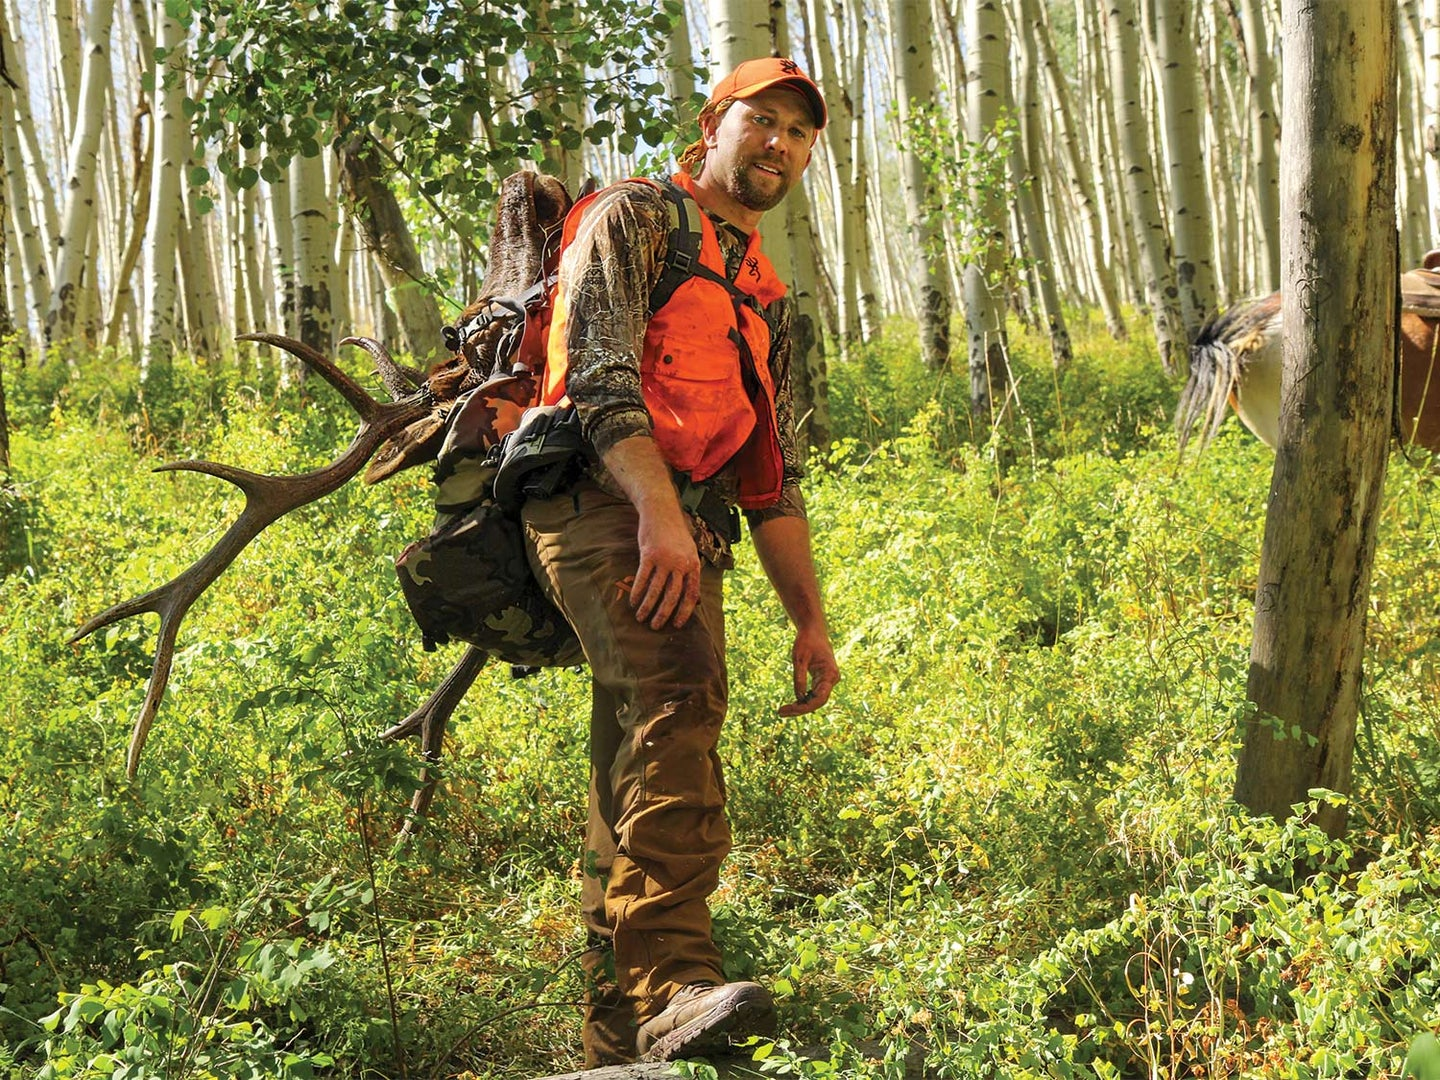 A hunter in camo and orange carries a backpack and elk antlers through sunlit woods.